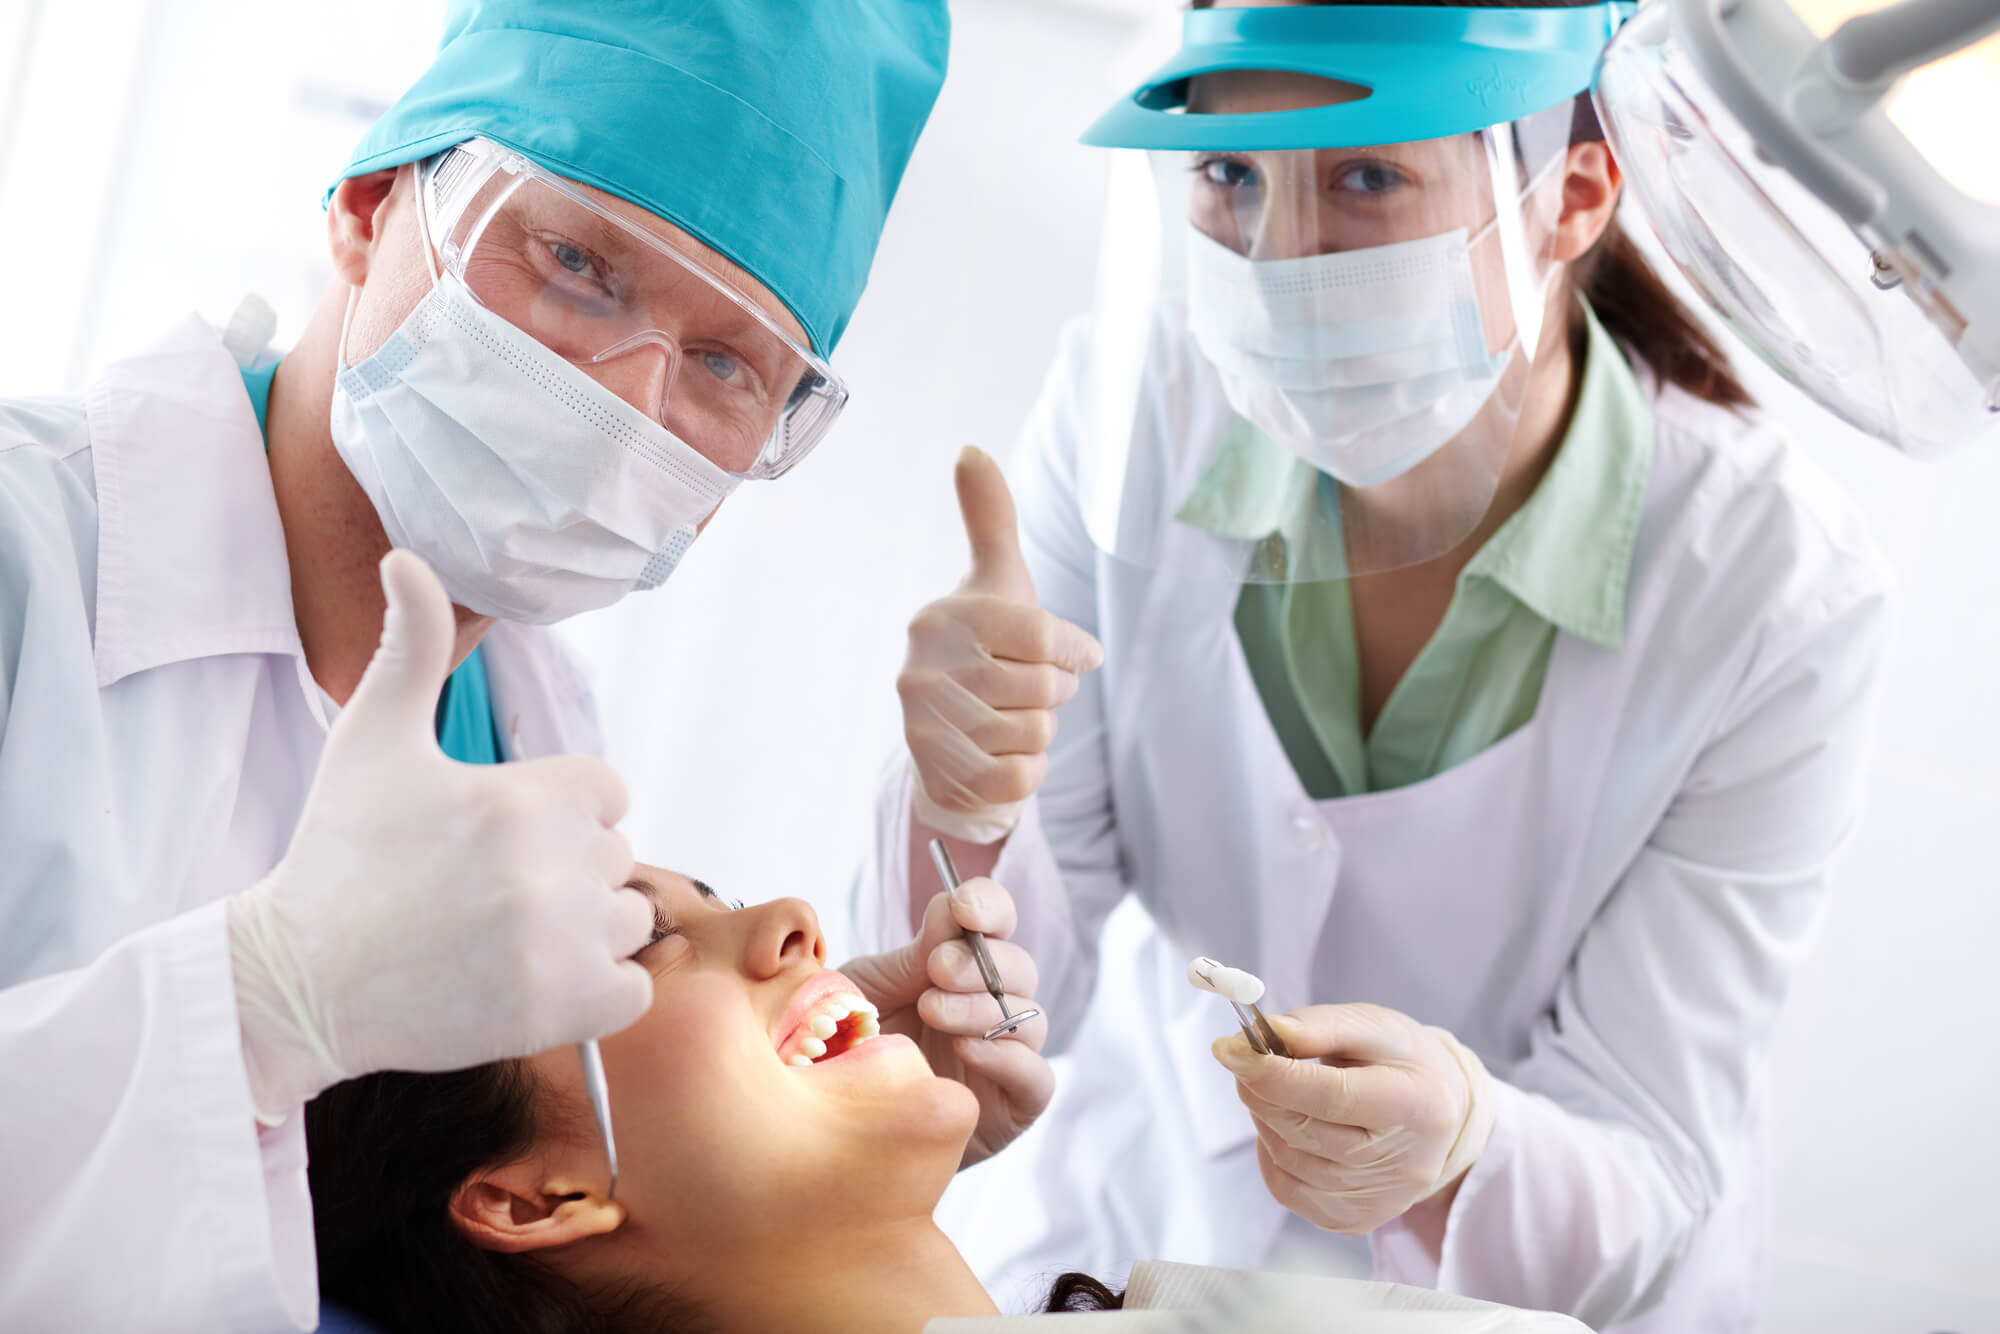 where is the best root canal therapy richmond?